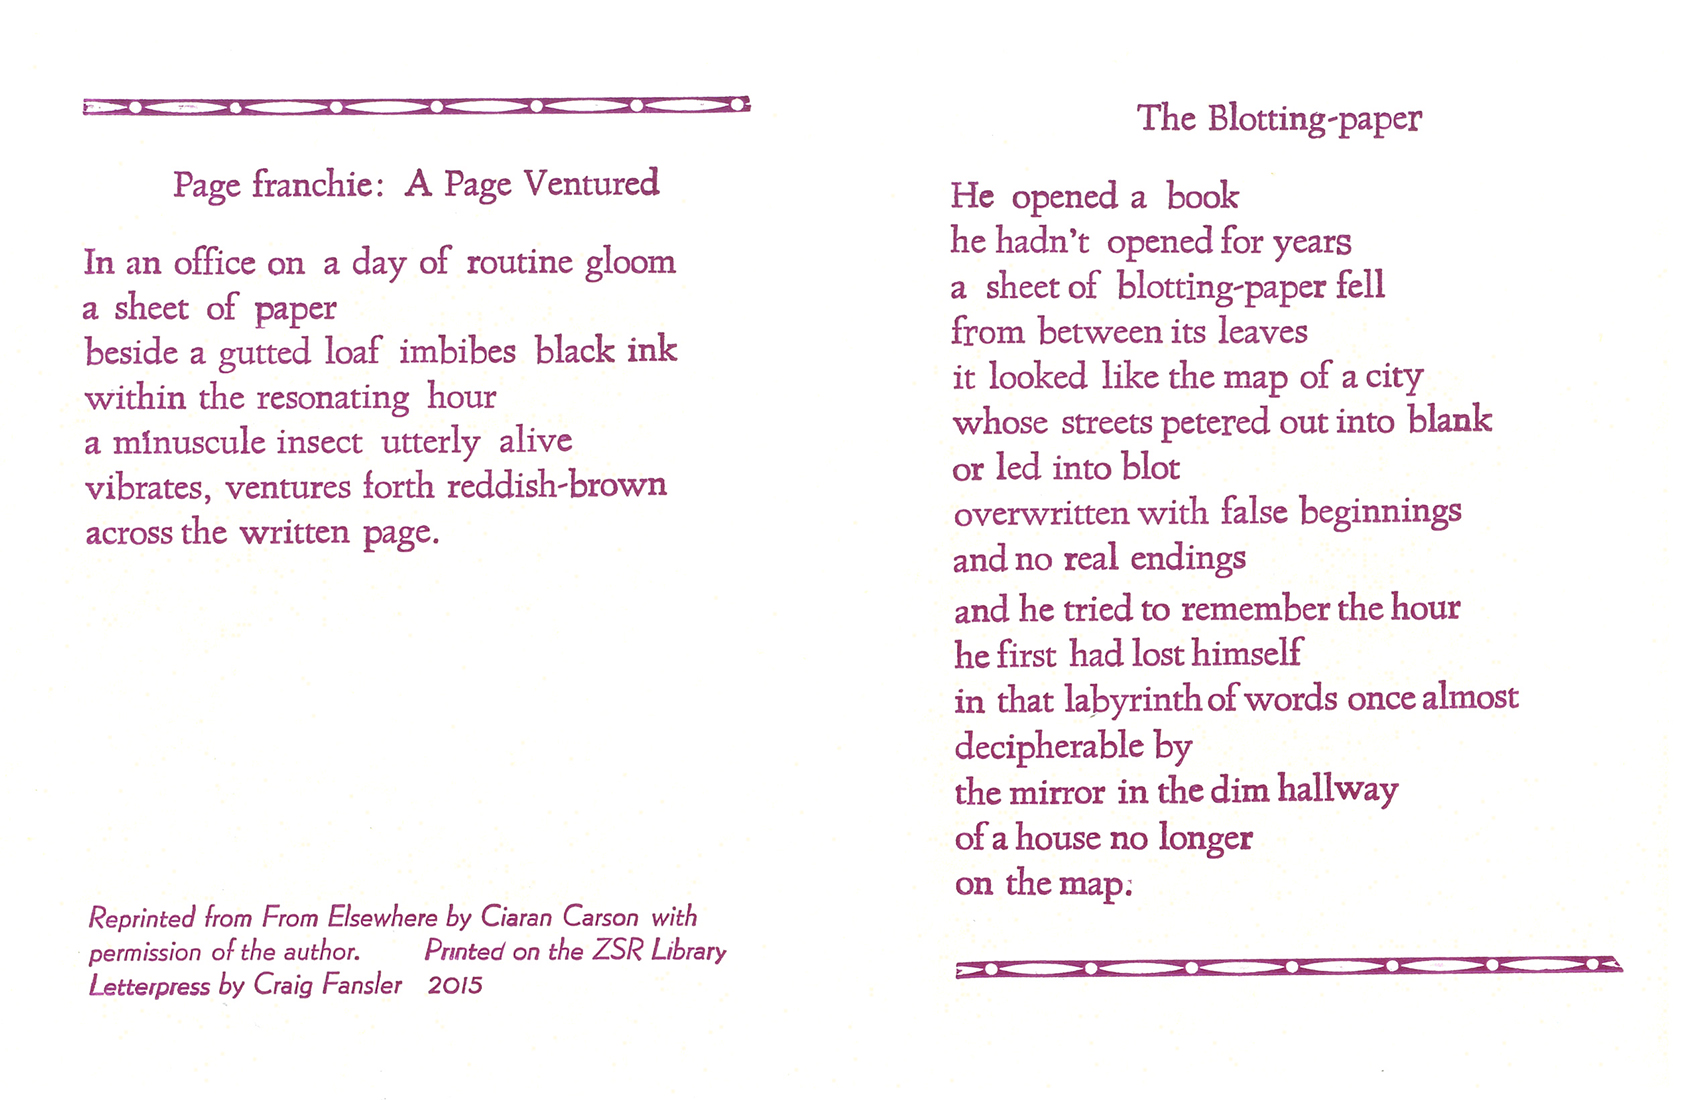 """Page franchie: A Page Ventured"" and ""The Blotting-paper"" Broadside"